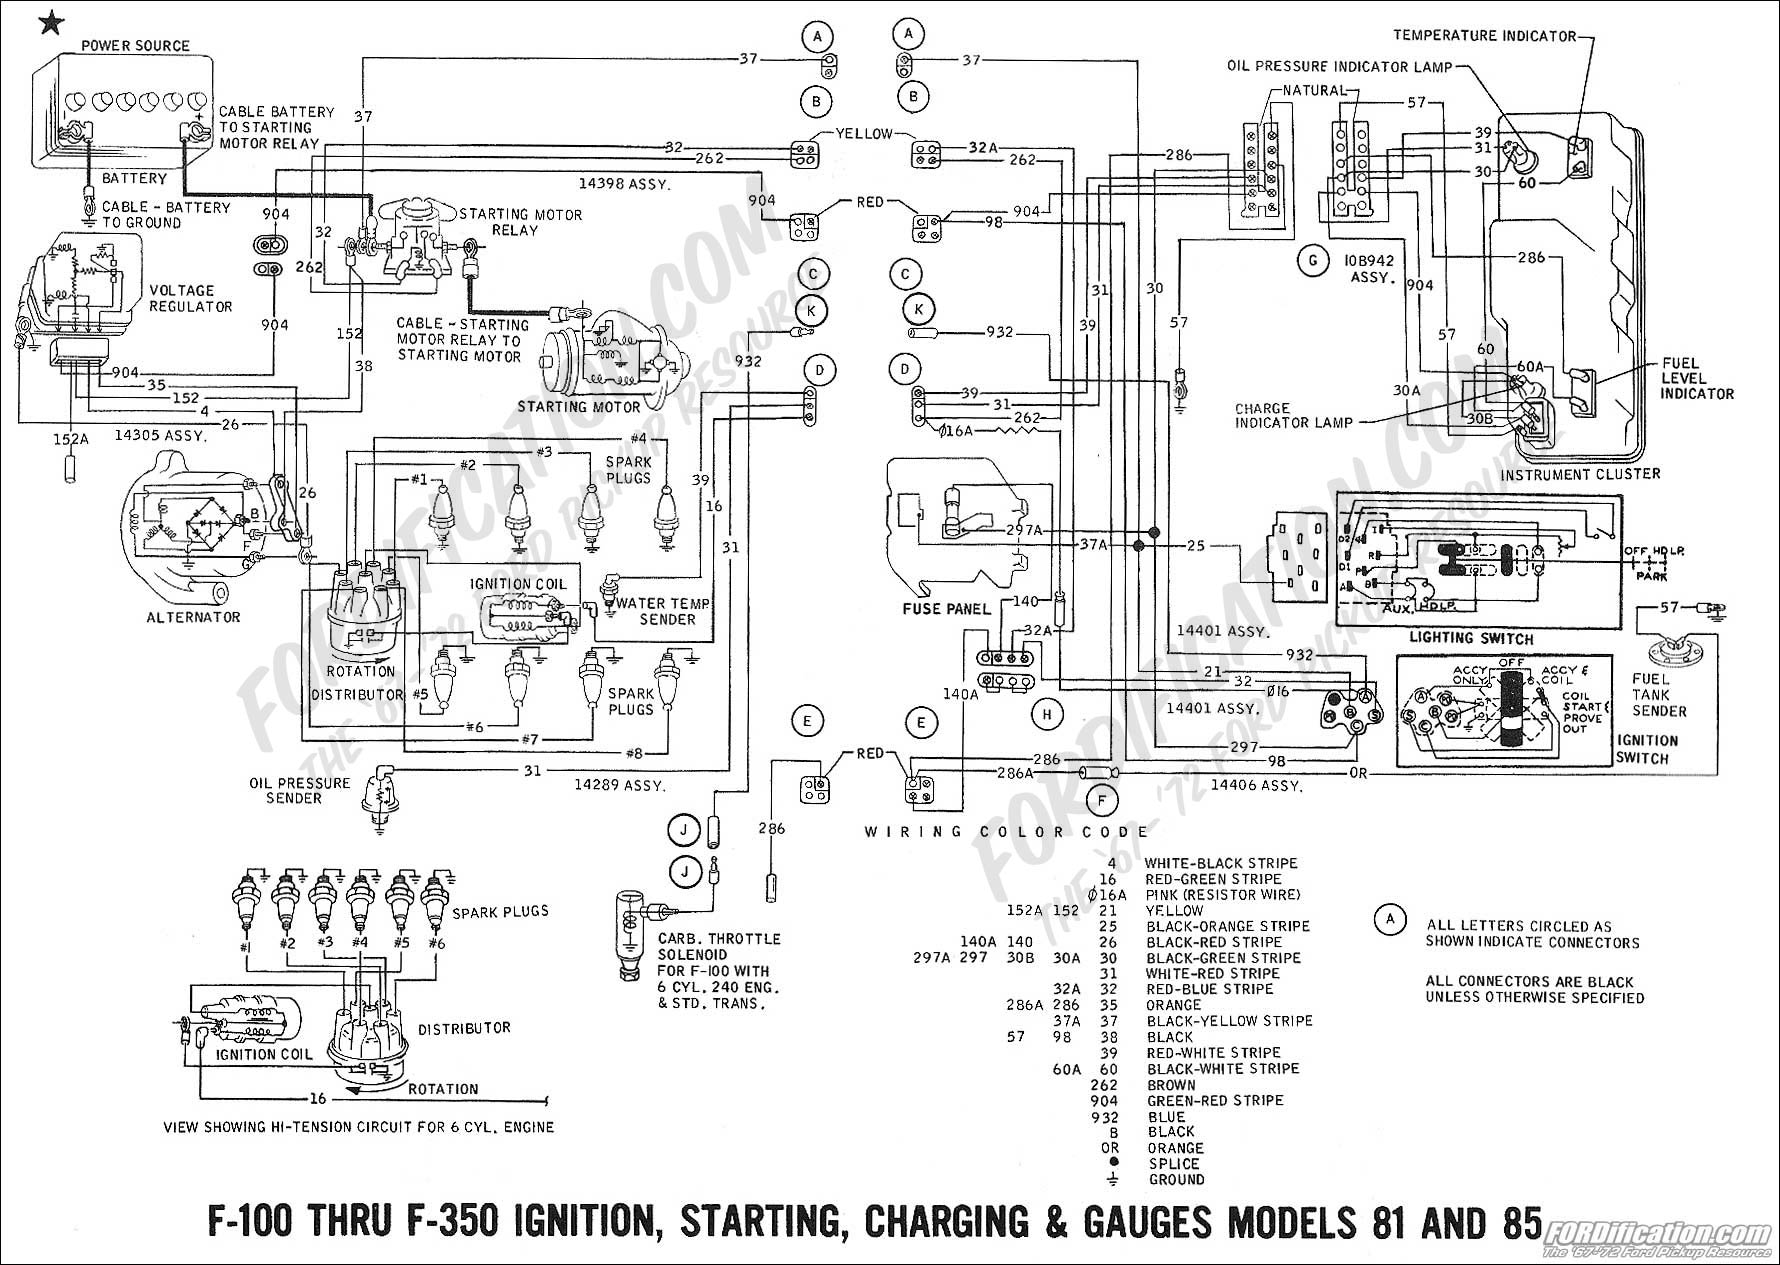 Dash Schematic Wiring Diagram 68 Camaro Front Light 92 Mustang Lights Library2014 Ford F 250 Opinions About